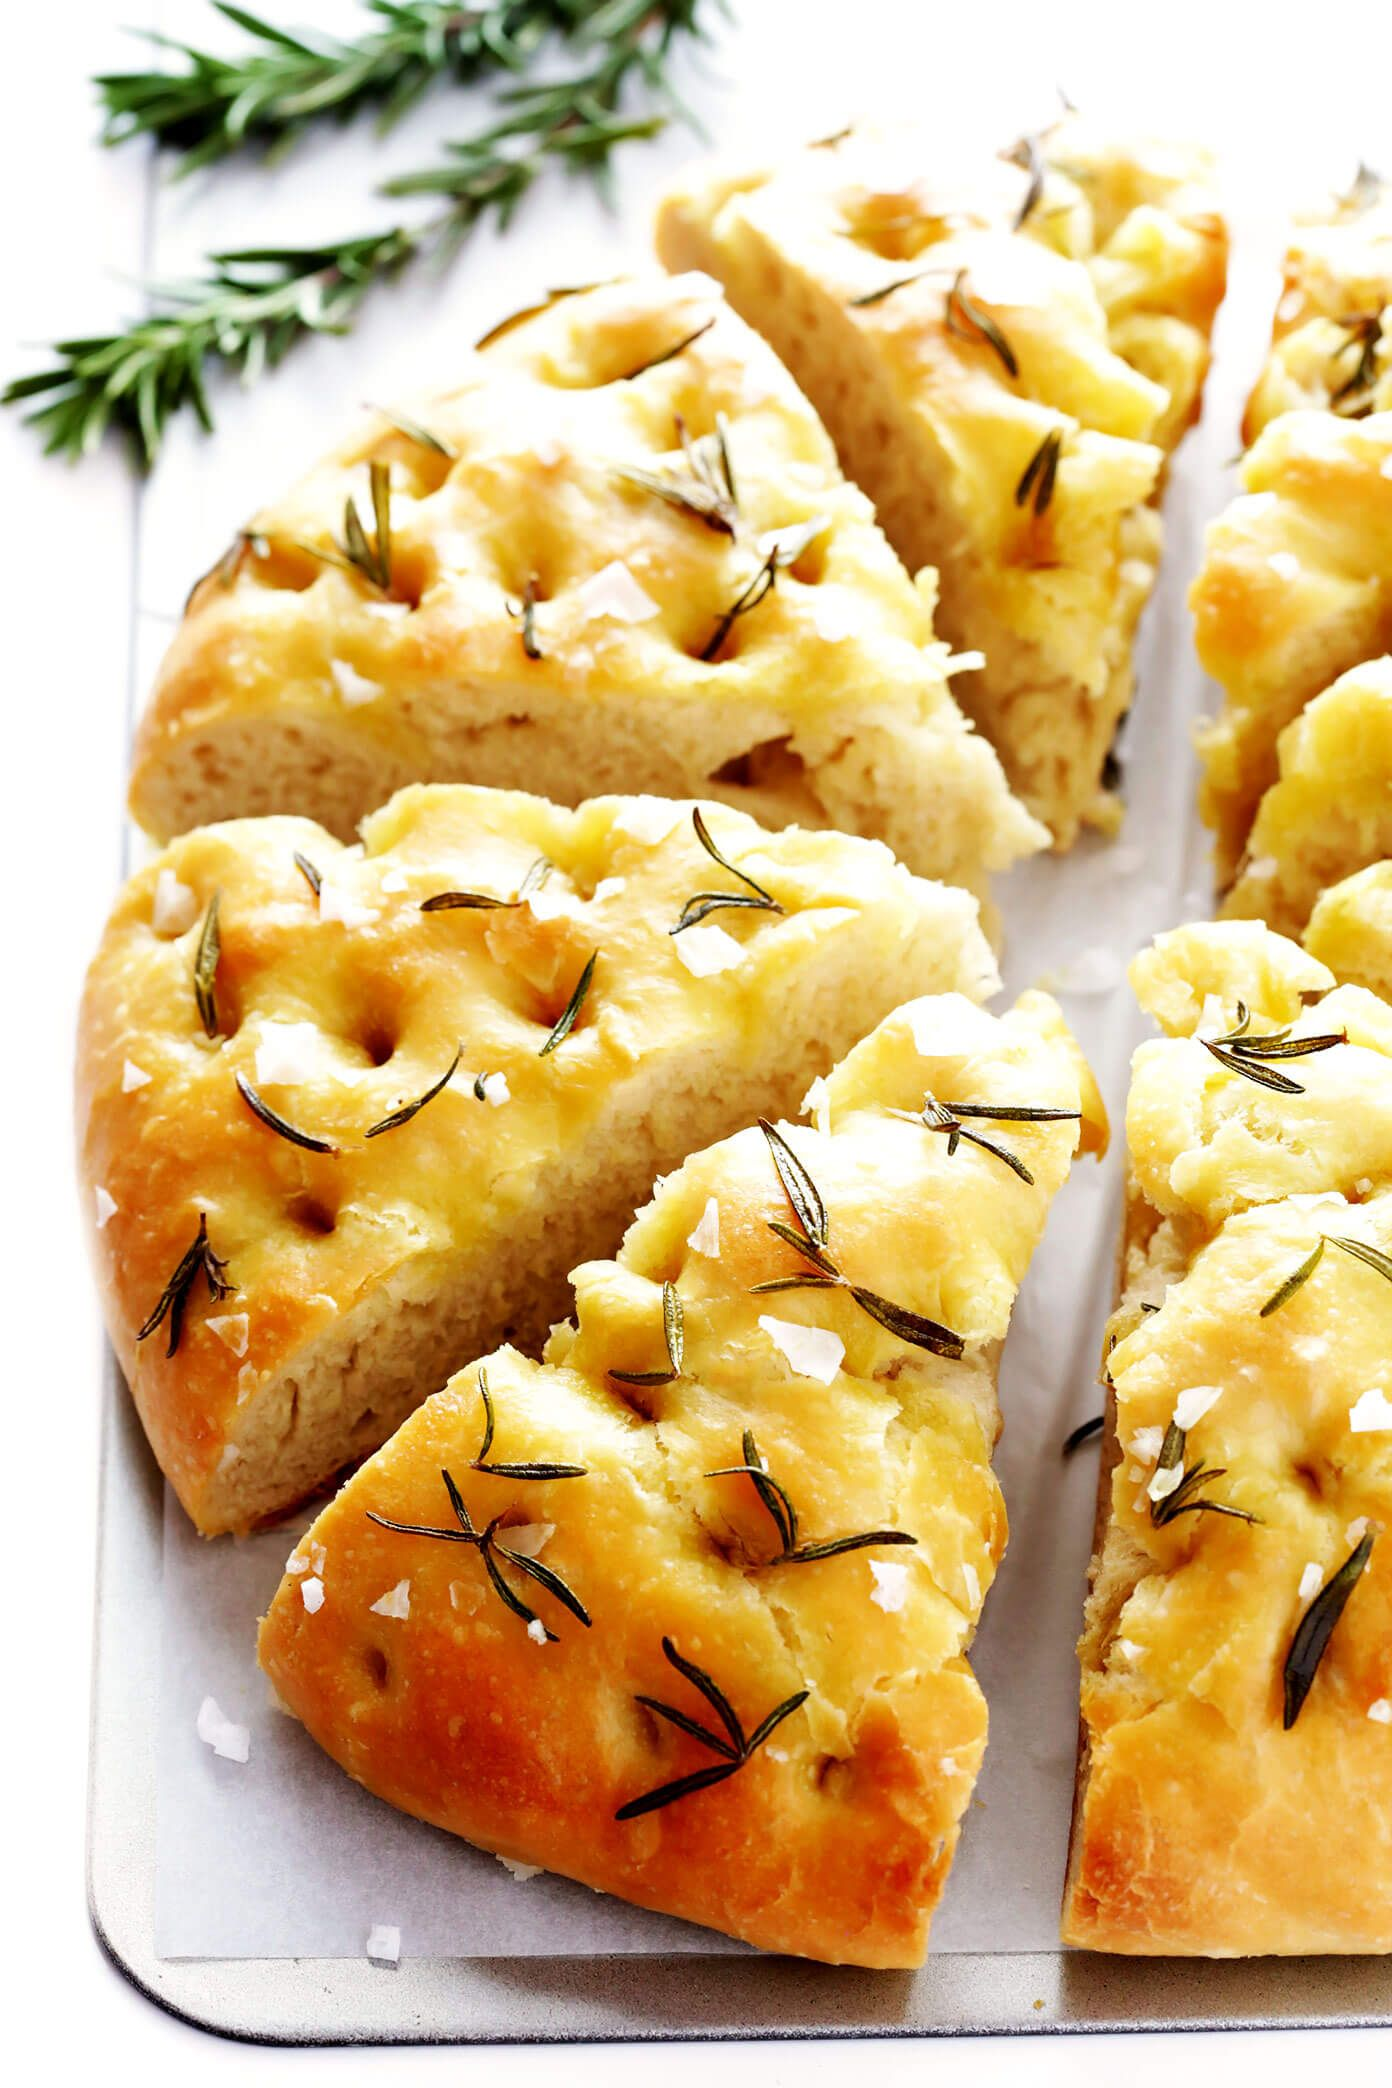 This delicious Rosemary Focaccia Bread recipe is easy to make, and topped with fresh rosemary, olive oil and flaky sea salt. Easy to make as a side for dinner, and it also freezes well! | gimmesomeoven.com #focaccia #bread #italian #side #vegetarian #baking